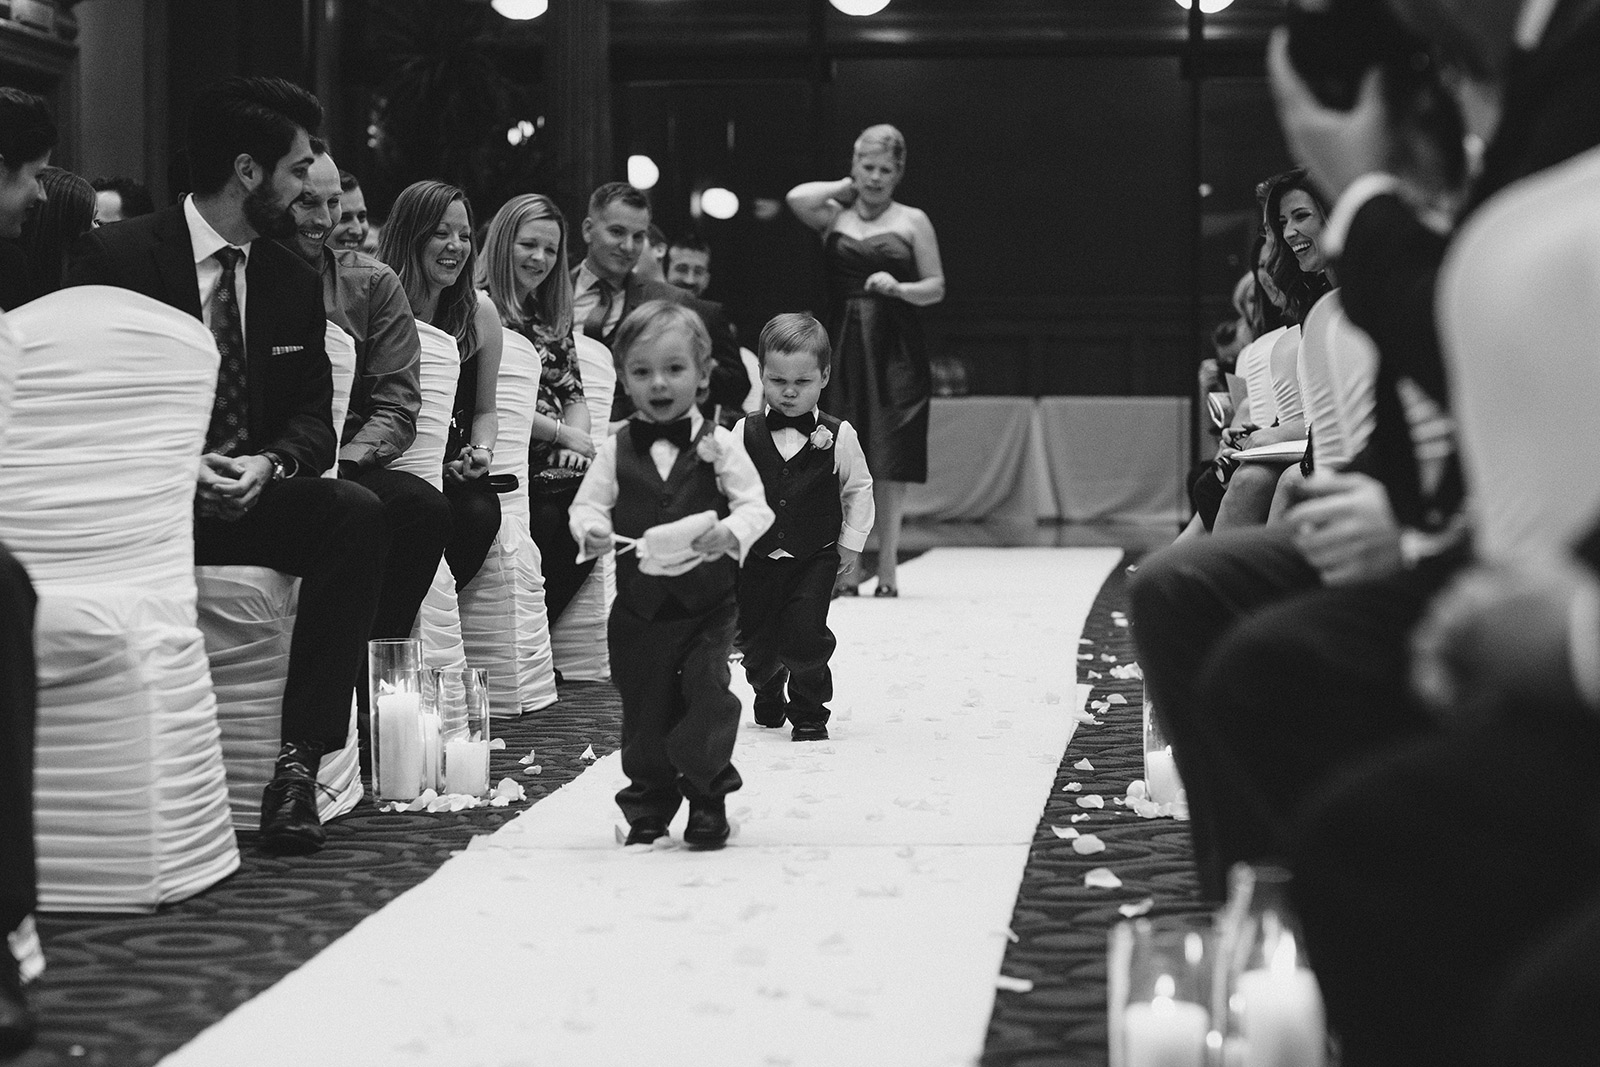 One-King-West-Toronto-wedding-photography_Sam-Wong-of-Visual-Cravings_KnR-24